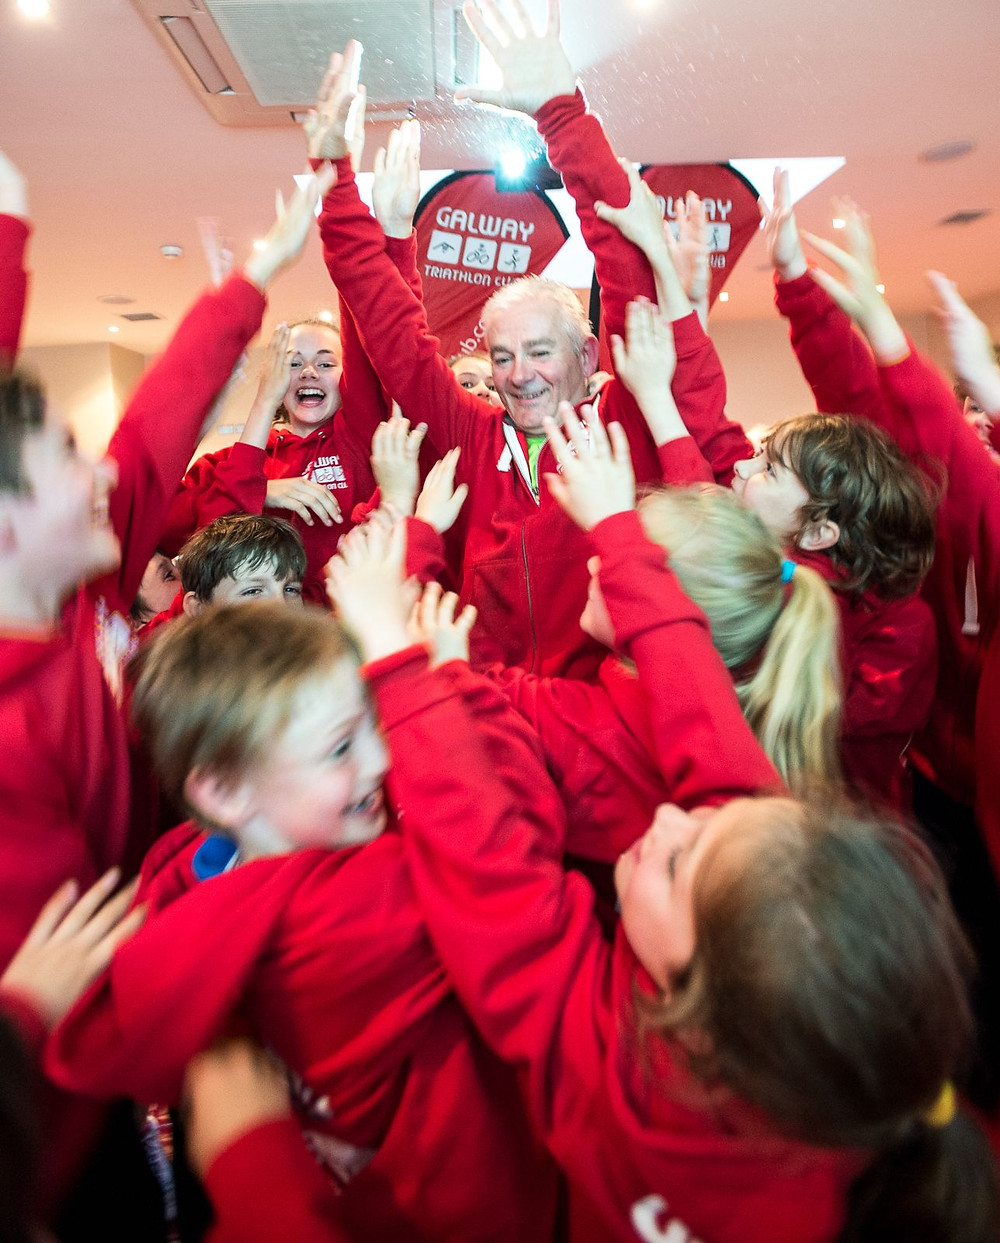 High Fives all Round for the Launch for GTC Juniors Photo Credit Michal Dzikowski.jpg